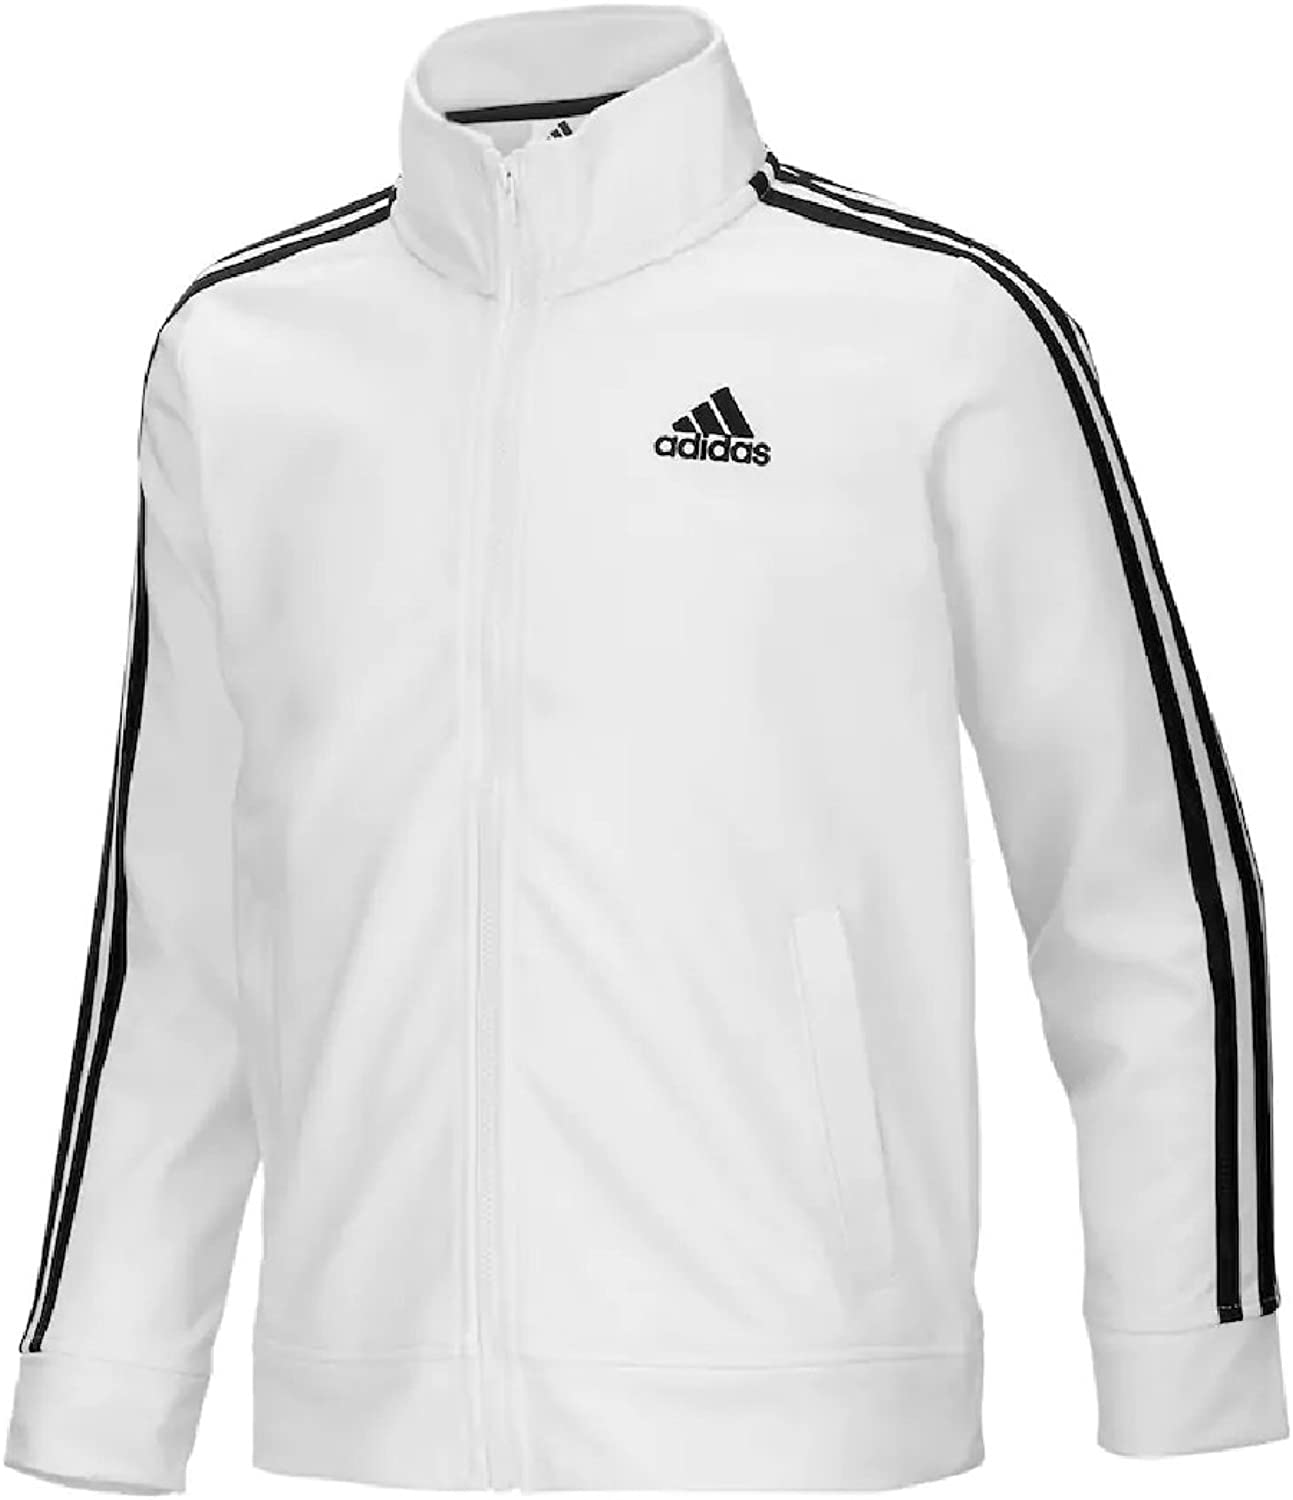 f7999c6e68bfe Adidas Girls Warm Tricot Track Jacket 7-16 up nxqvga5896-Sporting ...